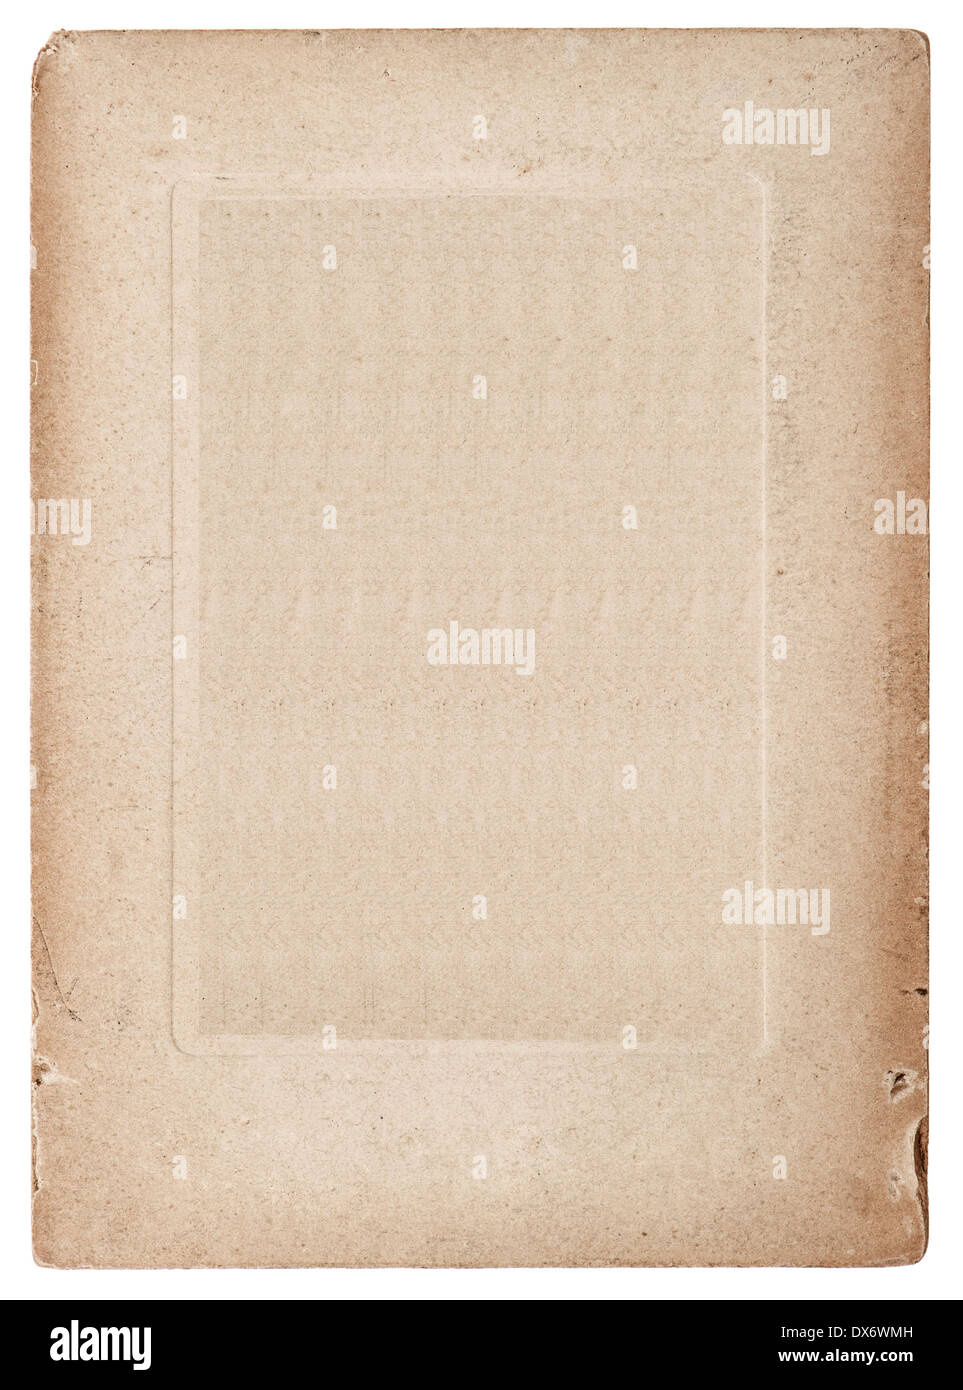 old vintage grunge card board. antique paper sheet isolated on white background Stock Photo